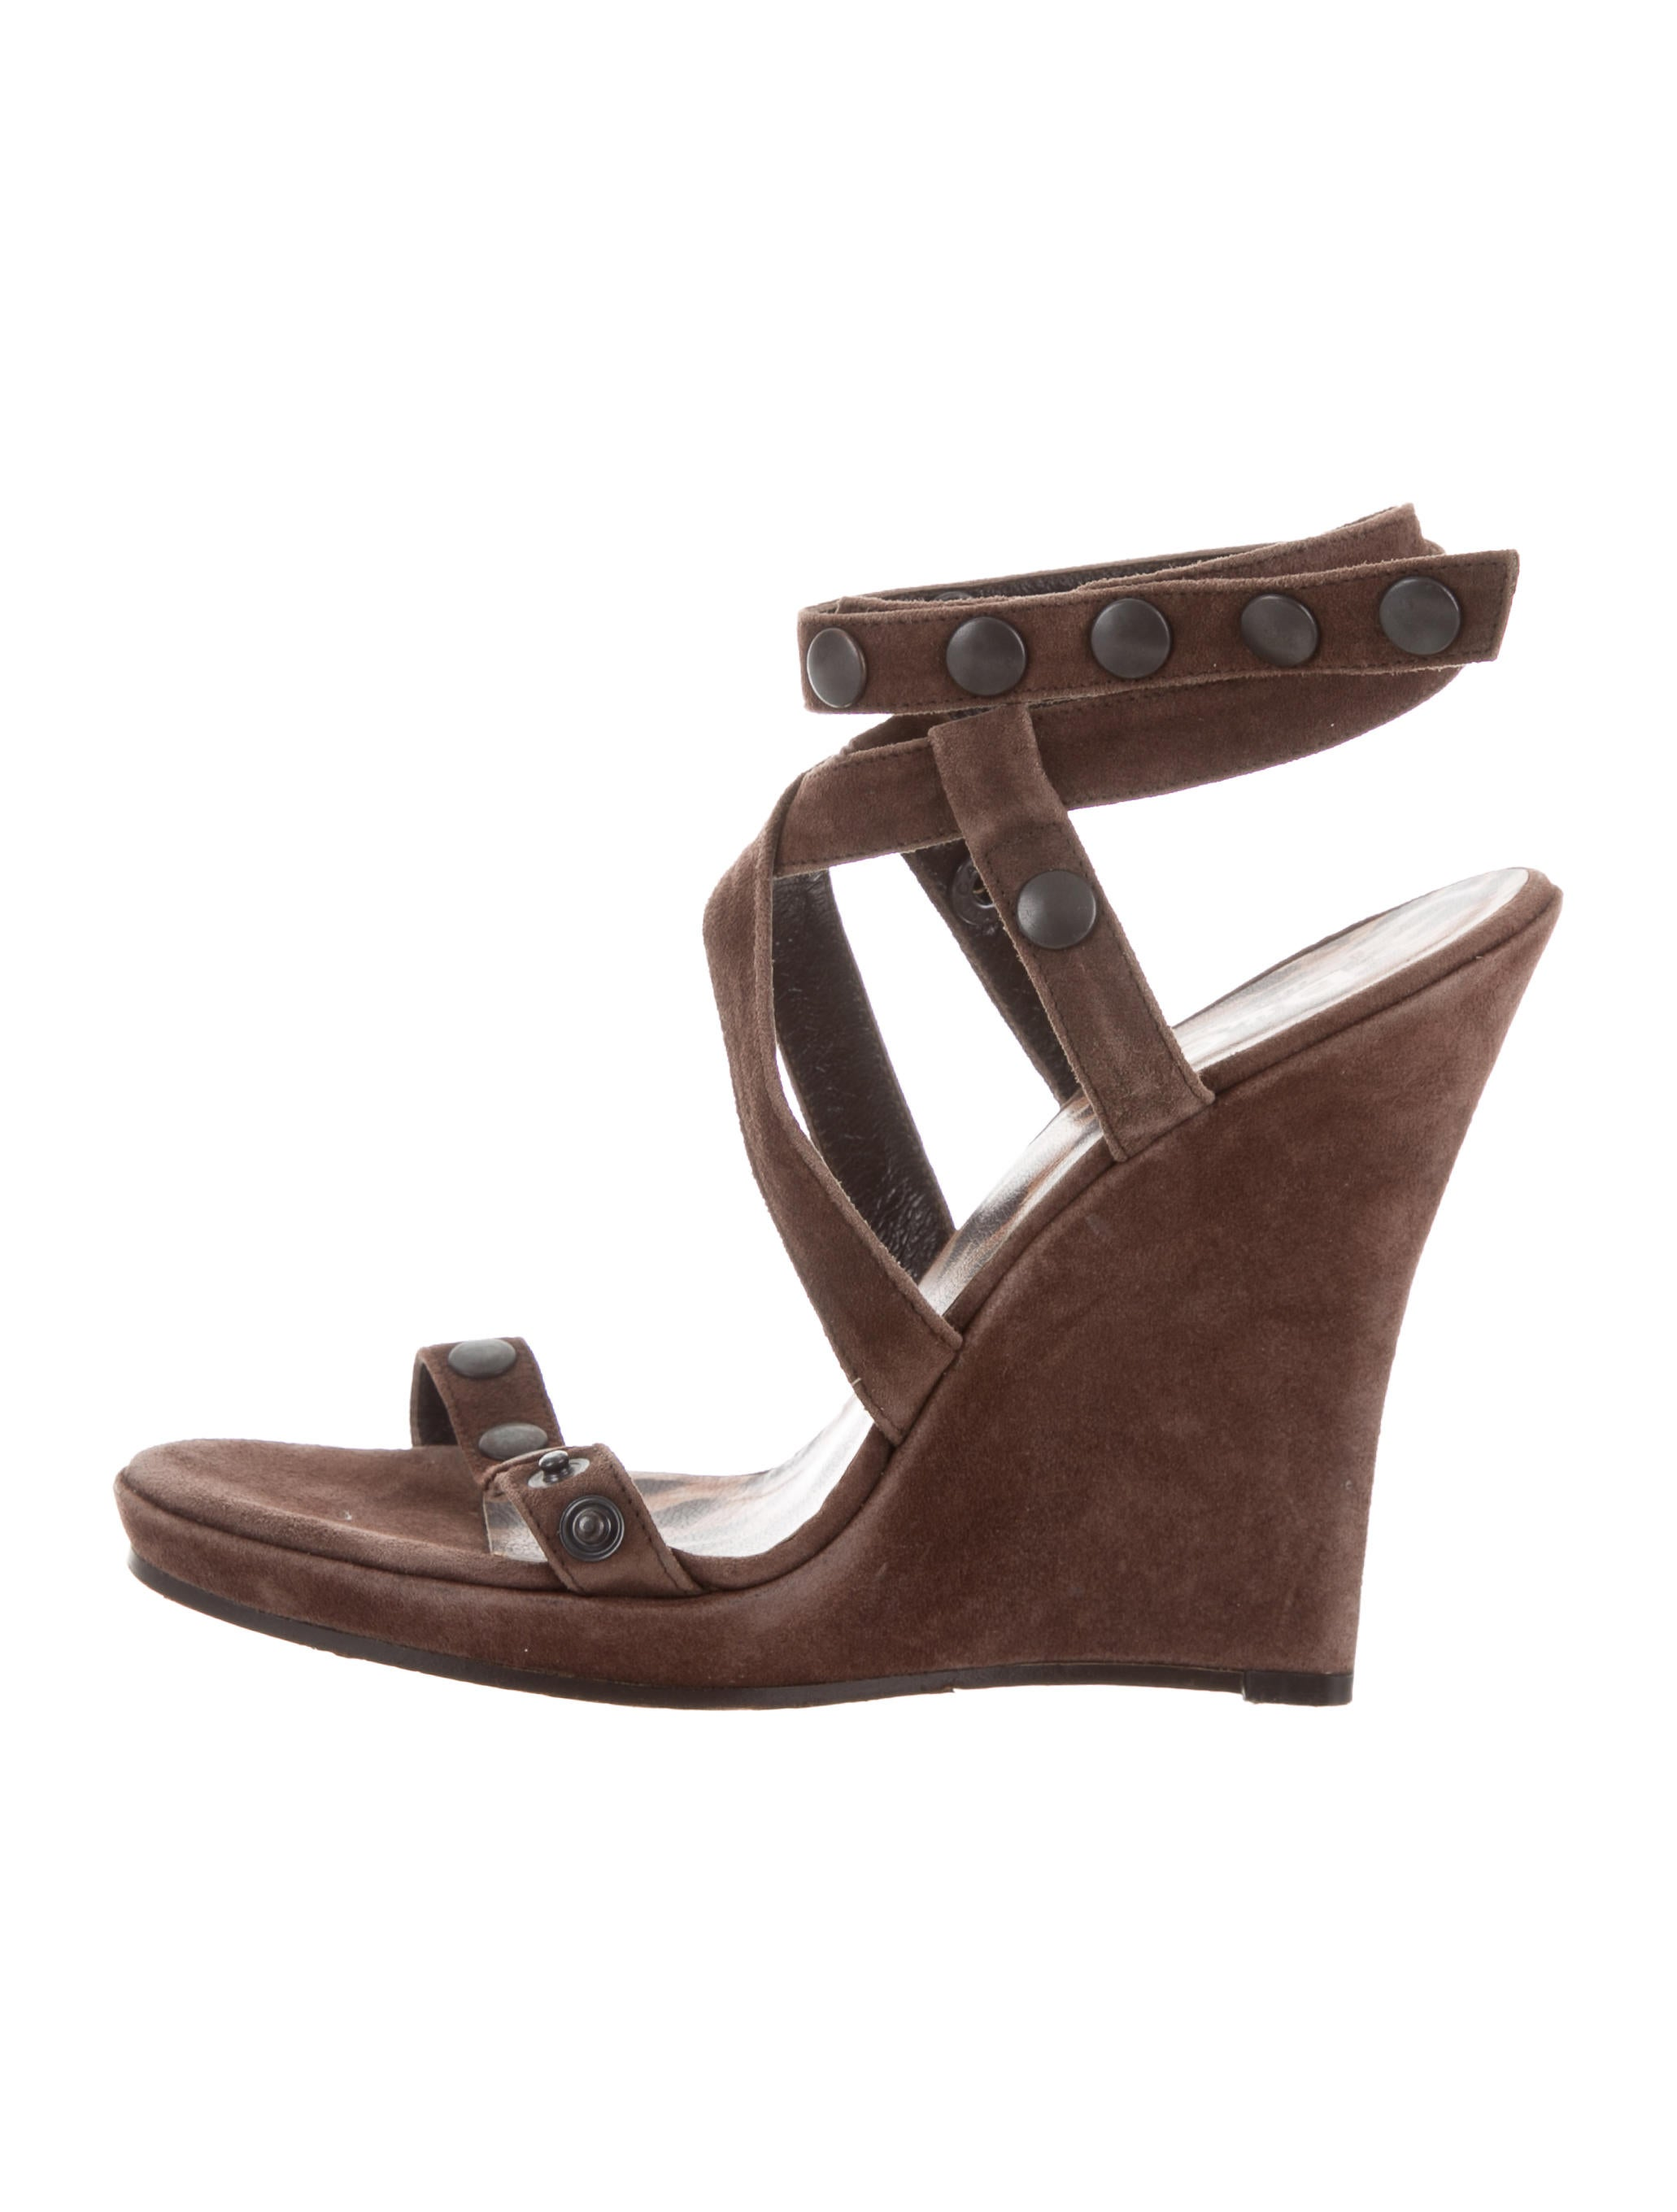 low shipping fee for sale D&G Suede Wedge Sandals exclusive cheap price sale eastbay from china free shipping low price cheap looking for 0TBnc